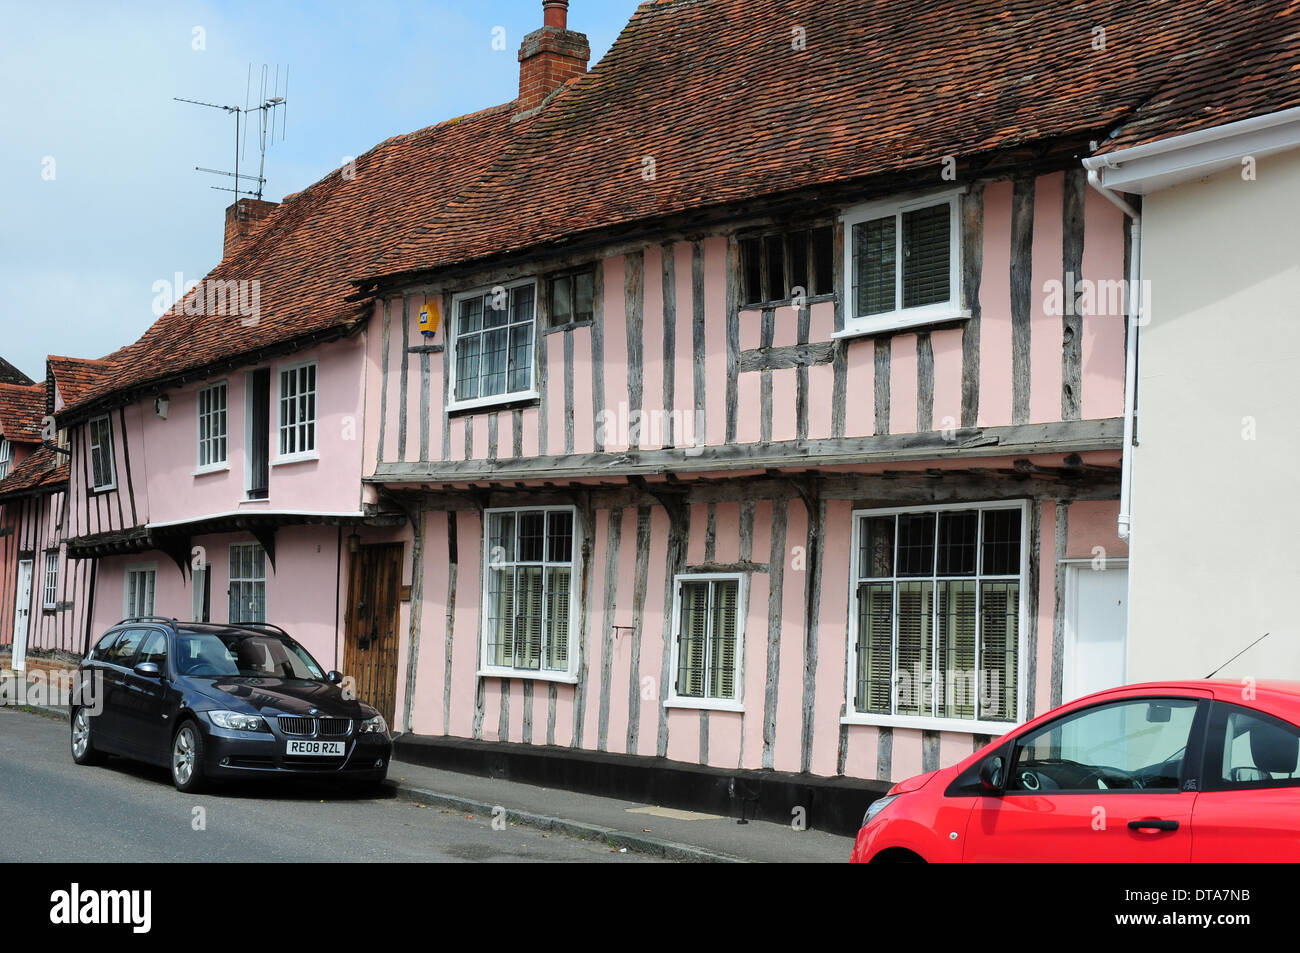 Pink washed timberframed houses in Water Street, Lavenham, Suffolk. - Stock Image